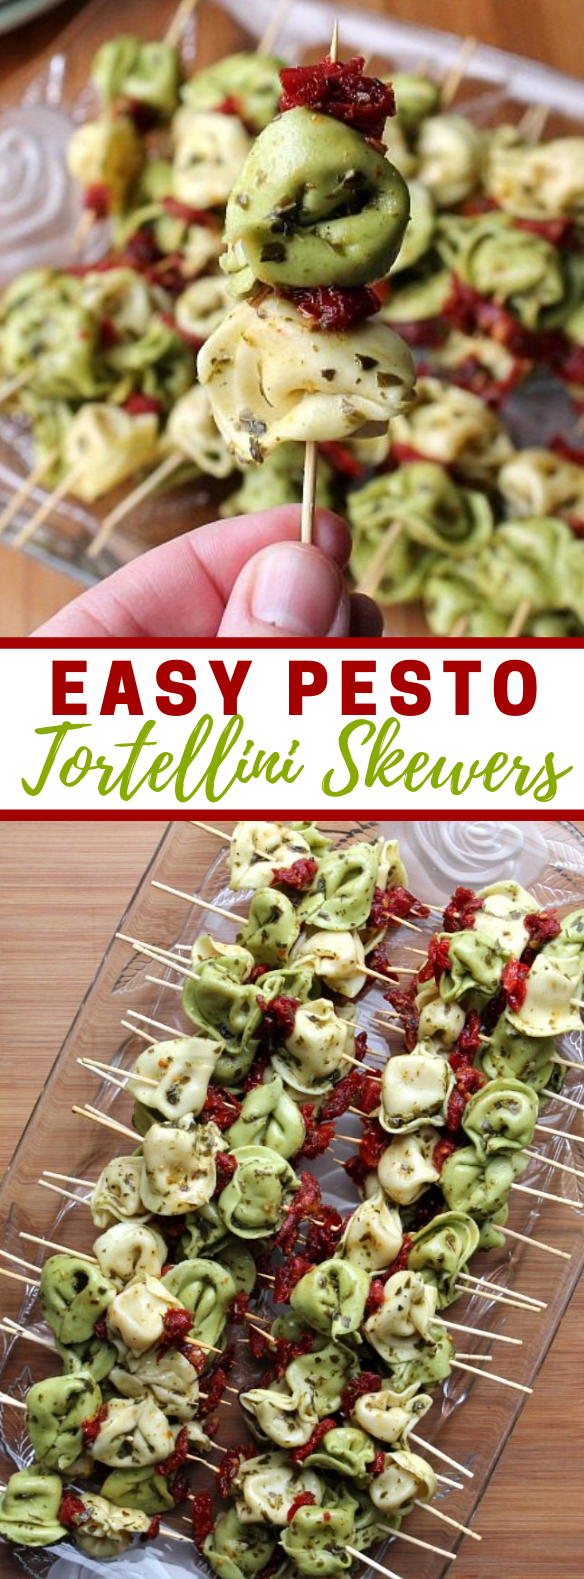 Easy Pesto Tortellini Skewers #appetizers #bbq